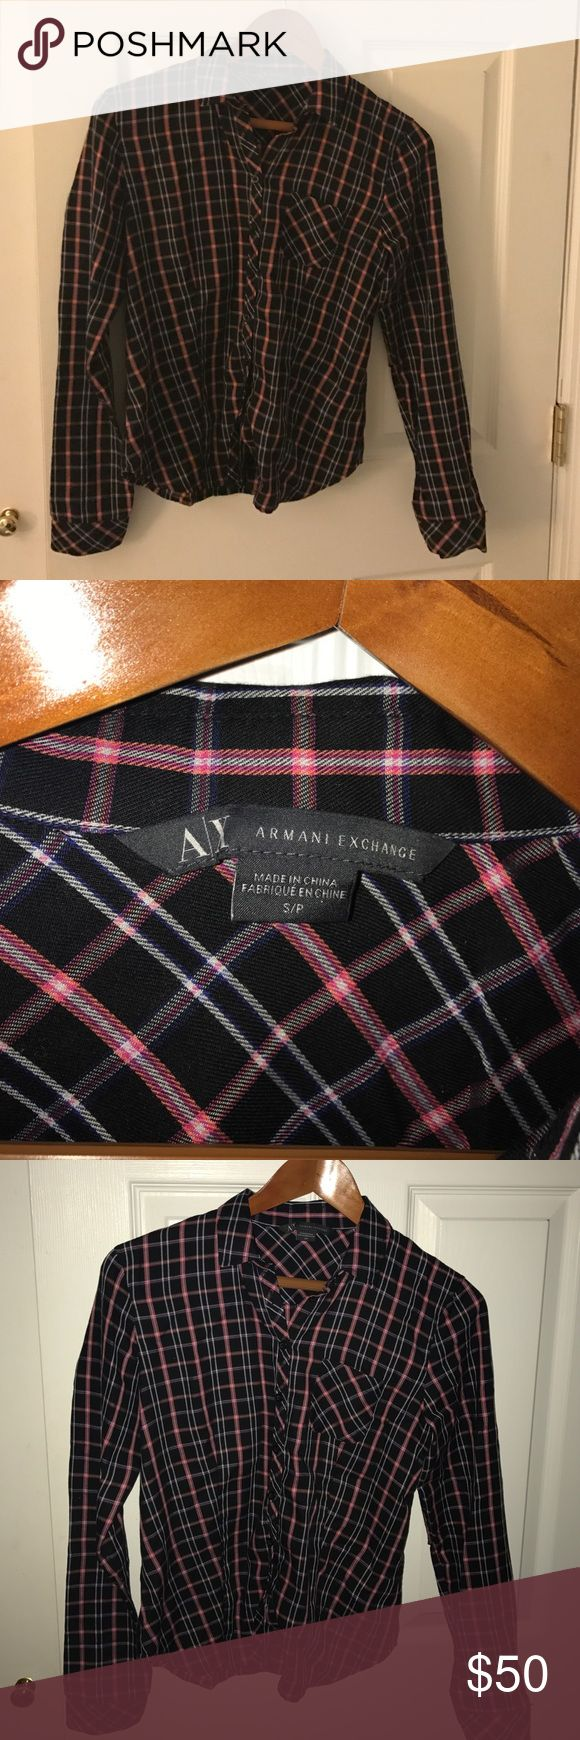 Armani exchange black and pink stripped button up Authentic Armani exchange button up black pink and white plays shirt. Size small. Like new condition! A/X Armani Exchange Tops Button Down Shirts